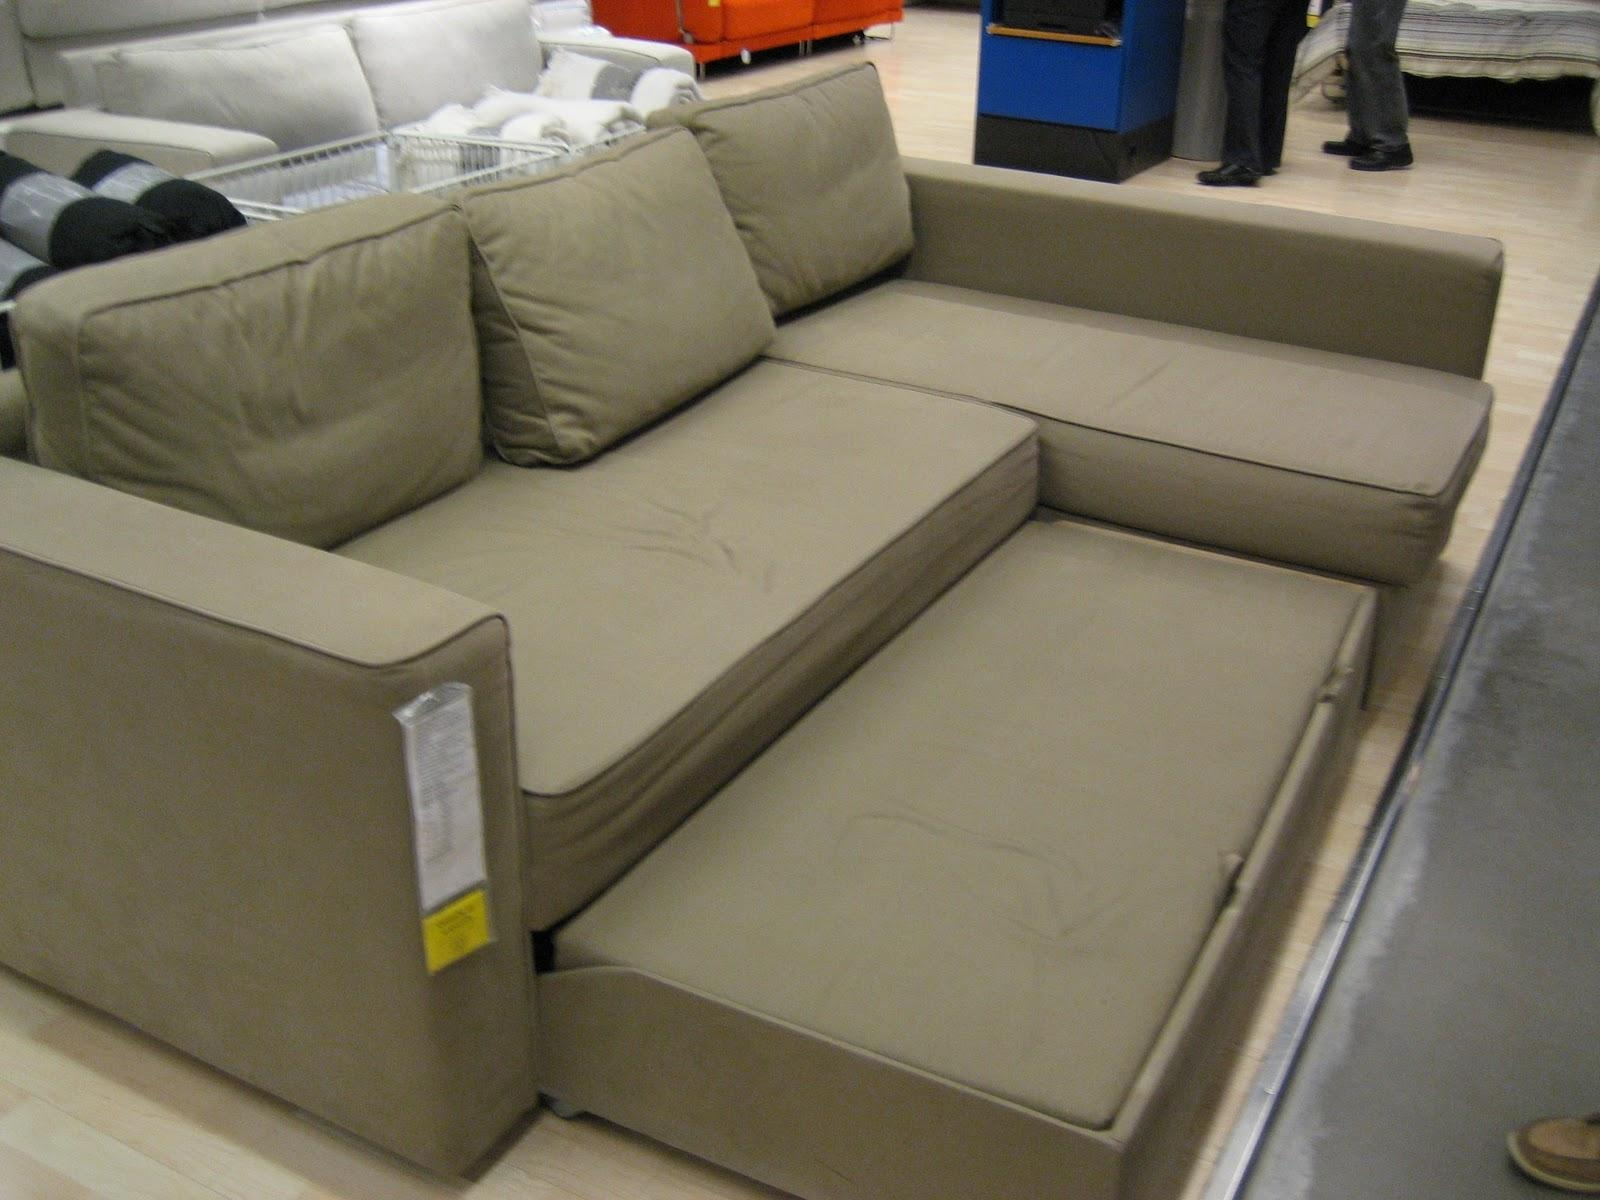 Backyard Sectional Sofa Pull Out Unforgettable Photo Concept Throughout Sofa Beds With Chaise Lounge (Image 3 of 20)